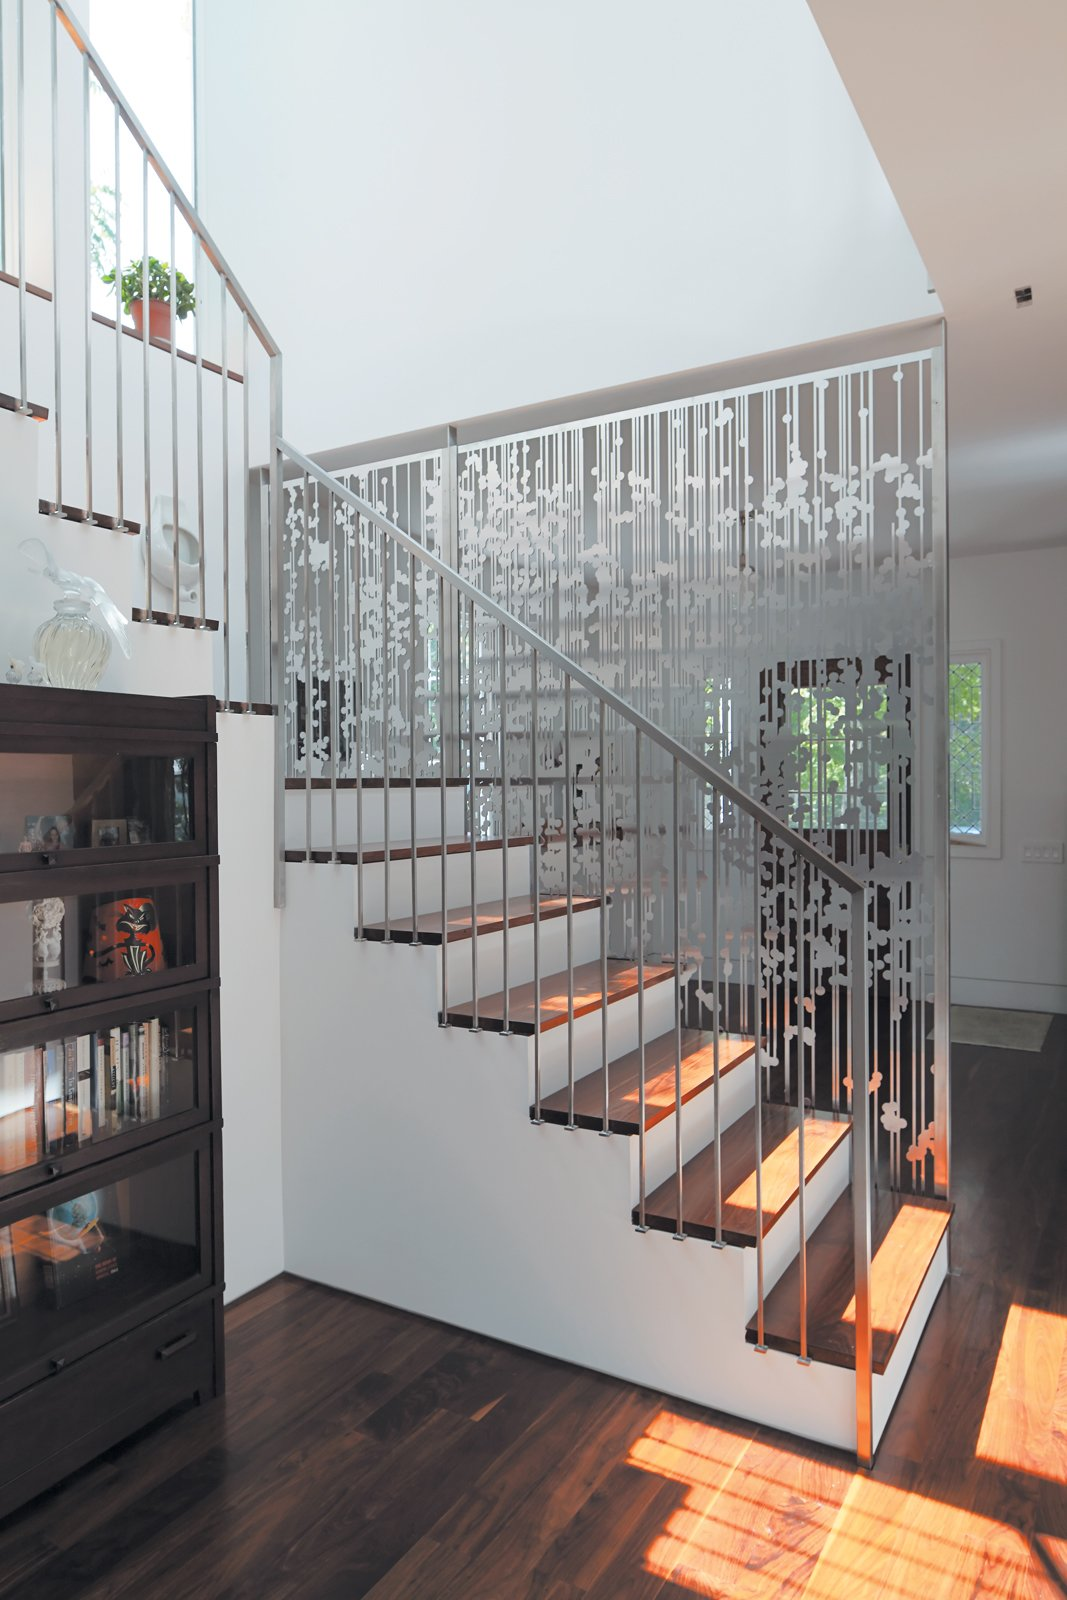 Andrew Magnes's hanging screen composed of aluminum circles and lines, cut with a CNC water jet, separates the entry from the staircase and rear kitchen area. Tagged: Staircase and Wood Tread.  190+ Best Modern Staircase Ideas by Dwell from An 1850 schoolhouse in Milford, Pennsylvania